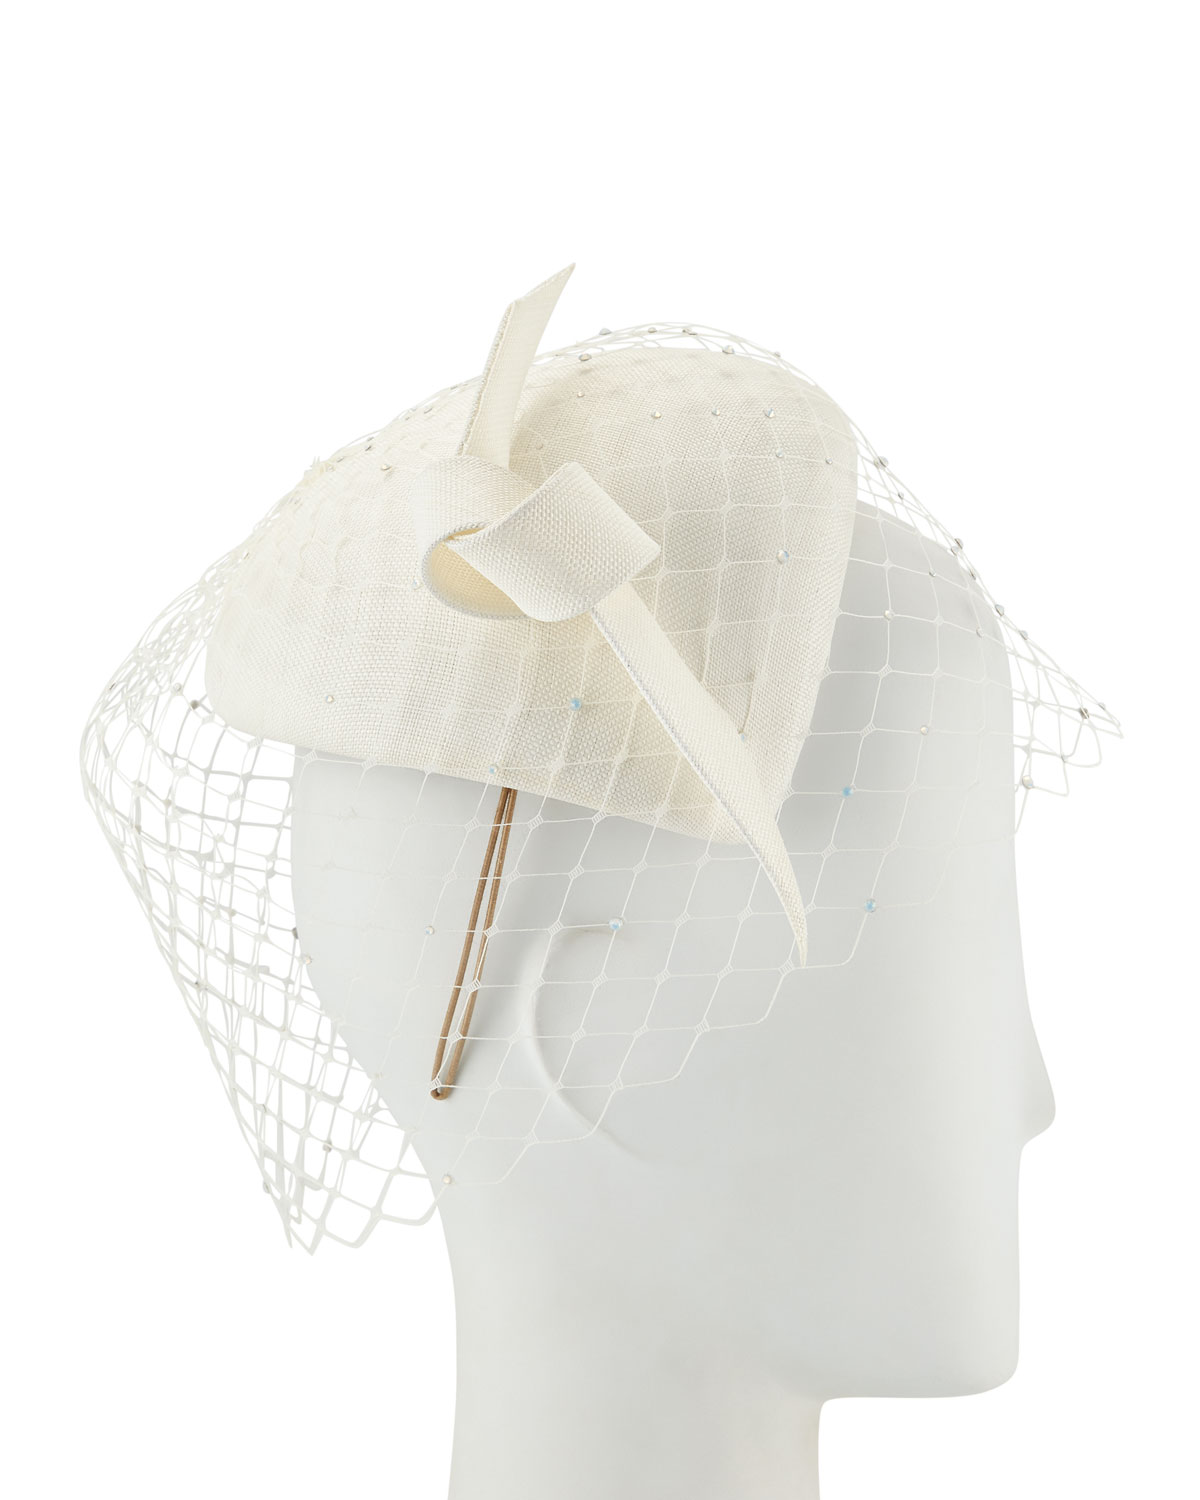 Philip Treacy Accessories HAND-BLOCKED STRAW CALOTTE